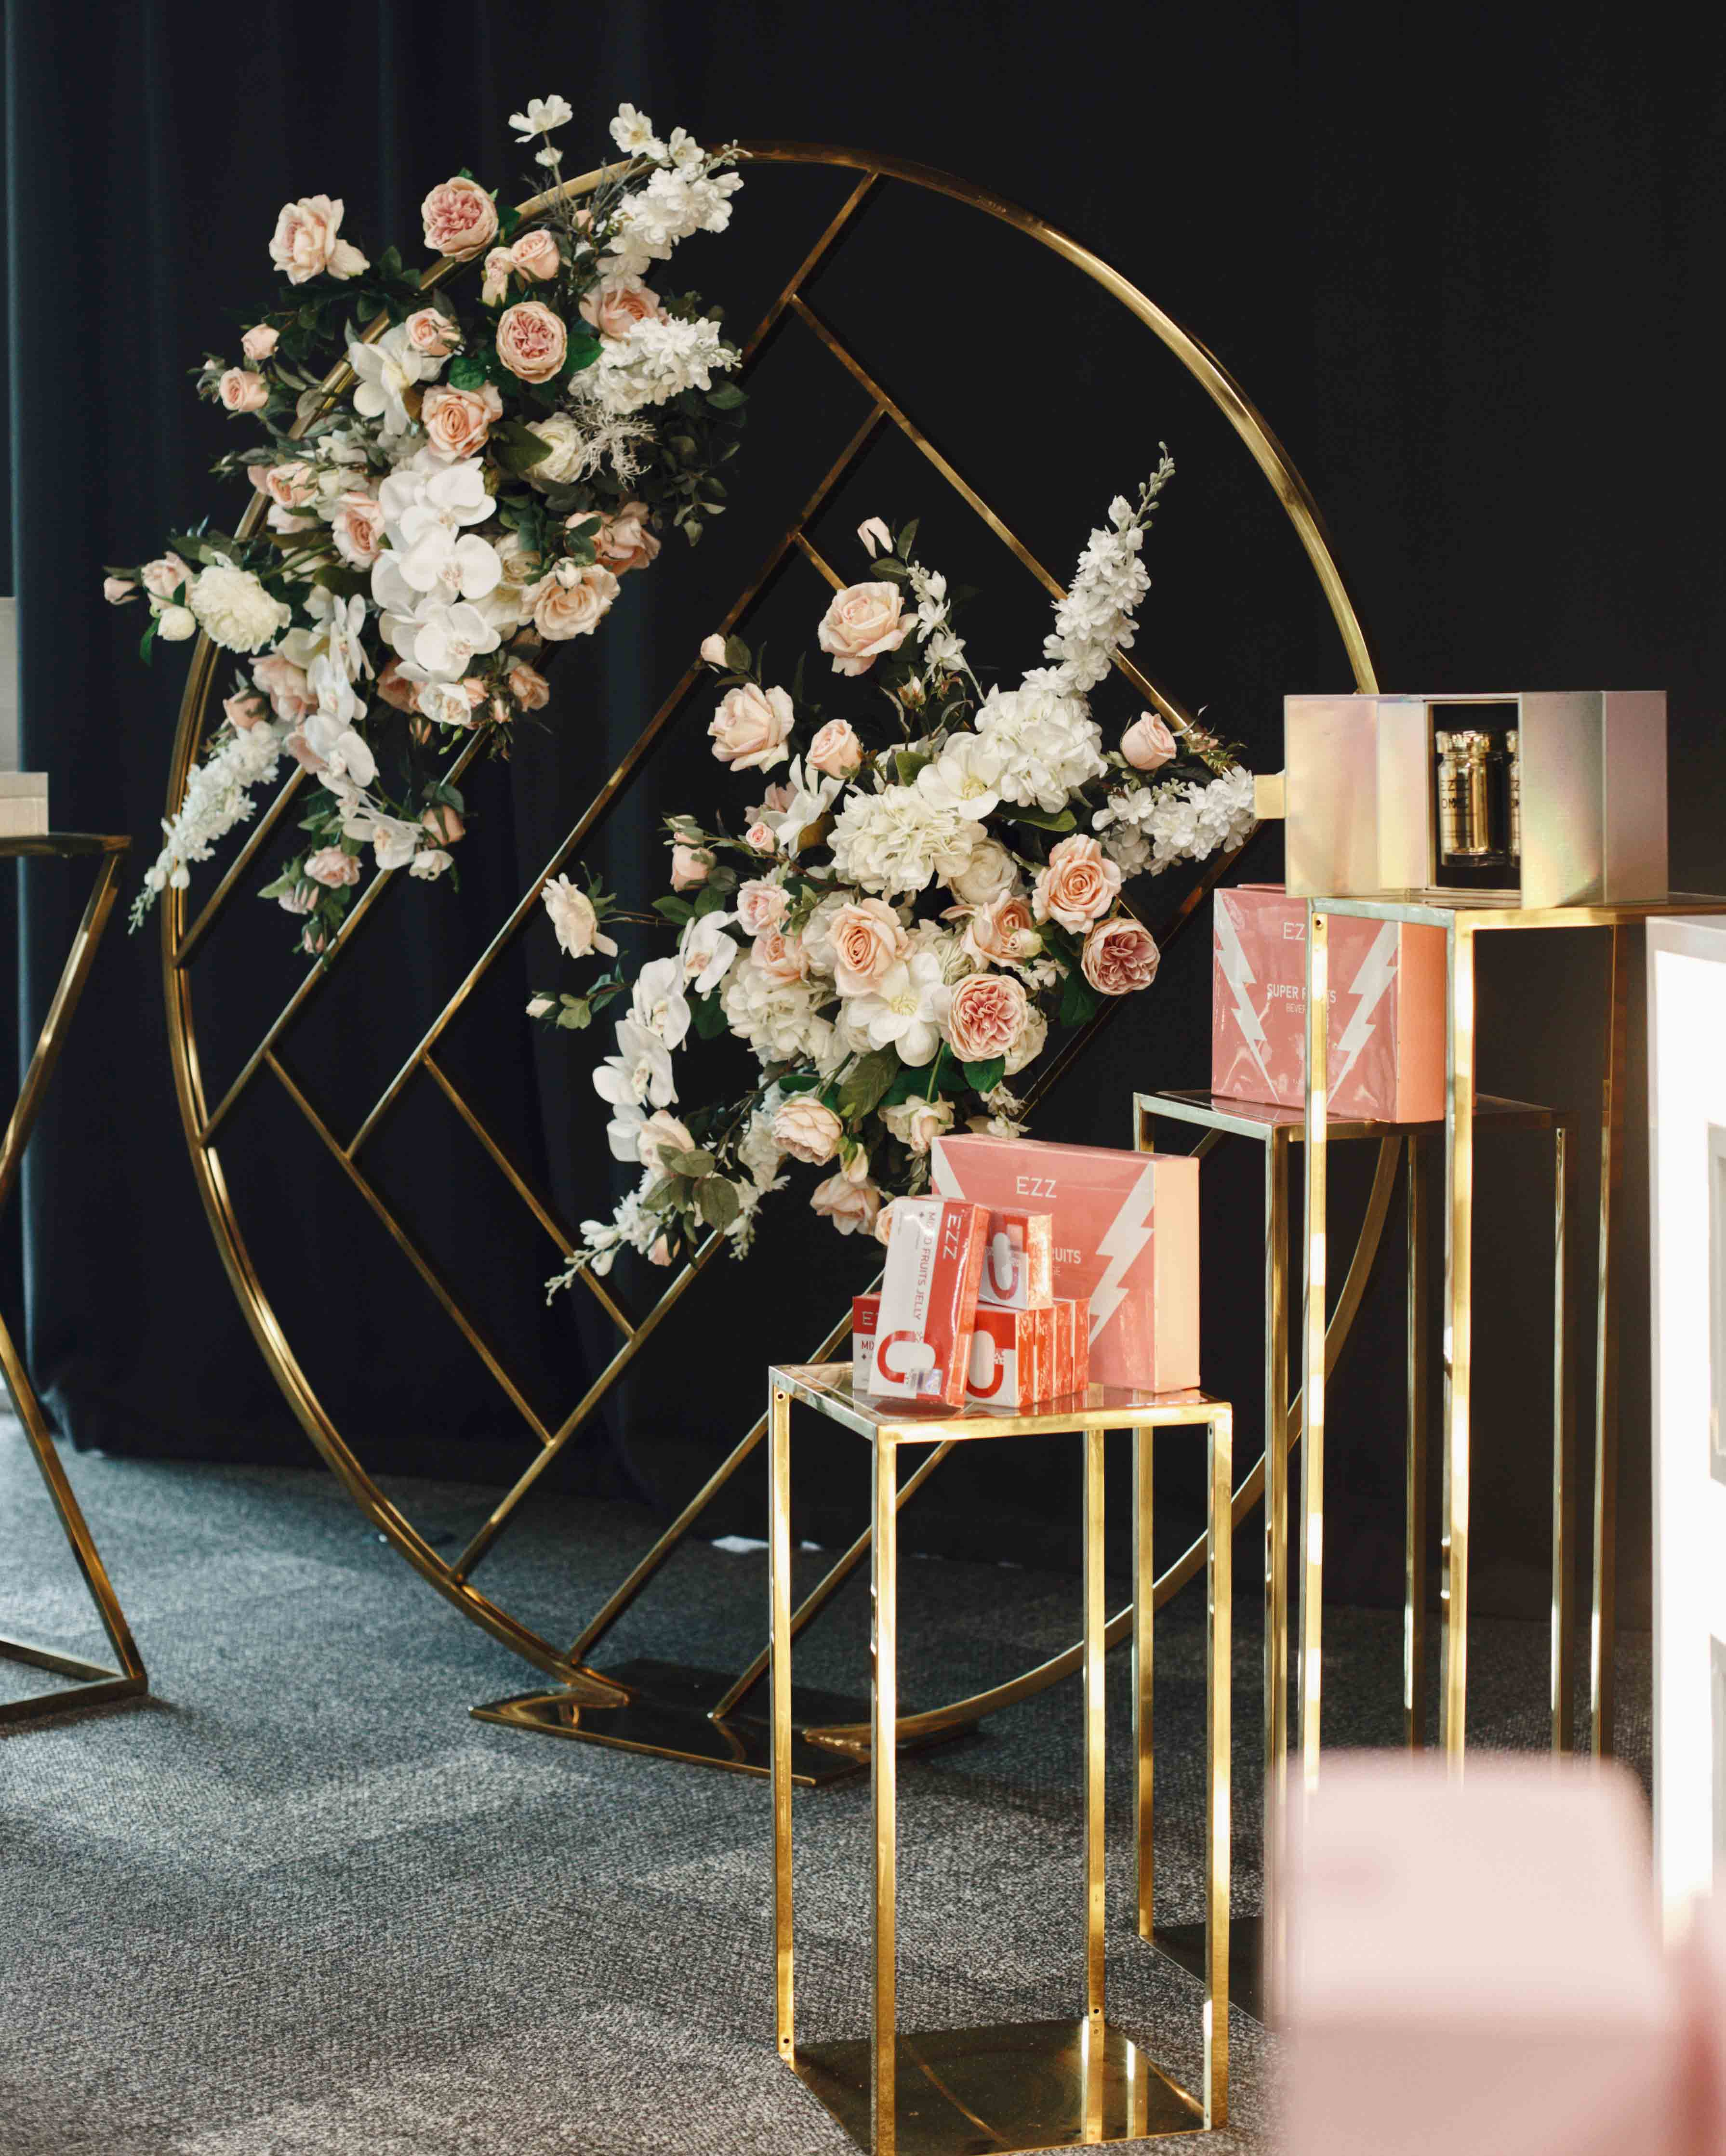 Geometric Wall and Hollow Gold Plinths by Luxe Dream Event Hire / Flowers by Luxe Dream Floral Studio